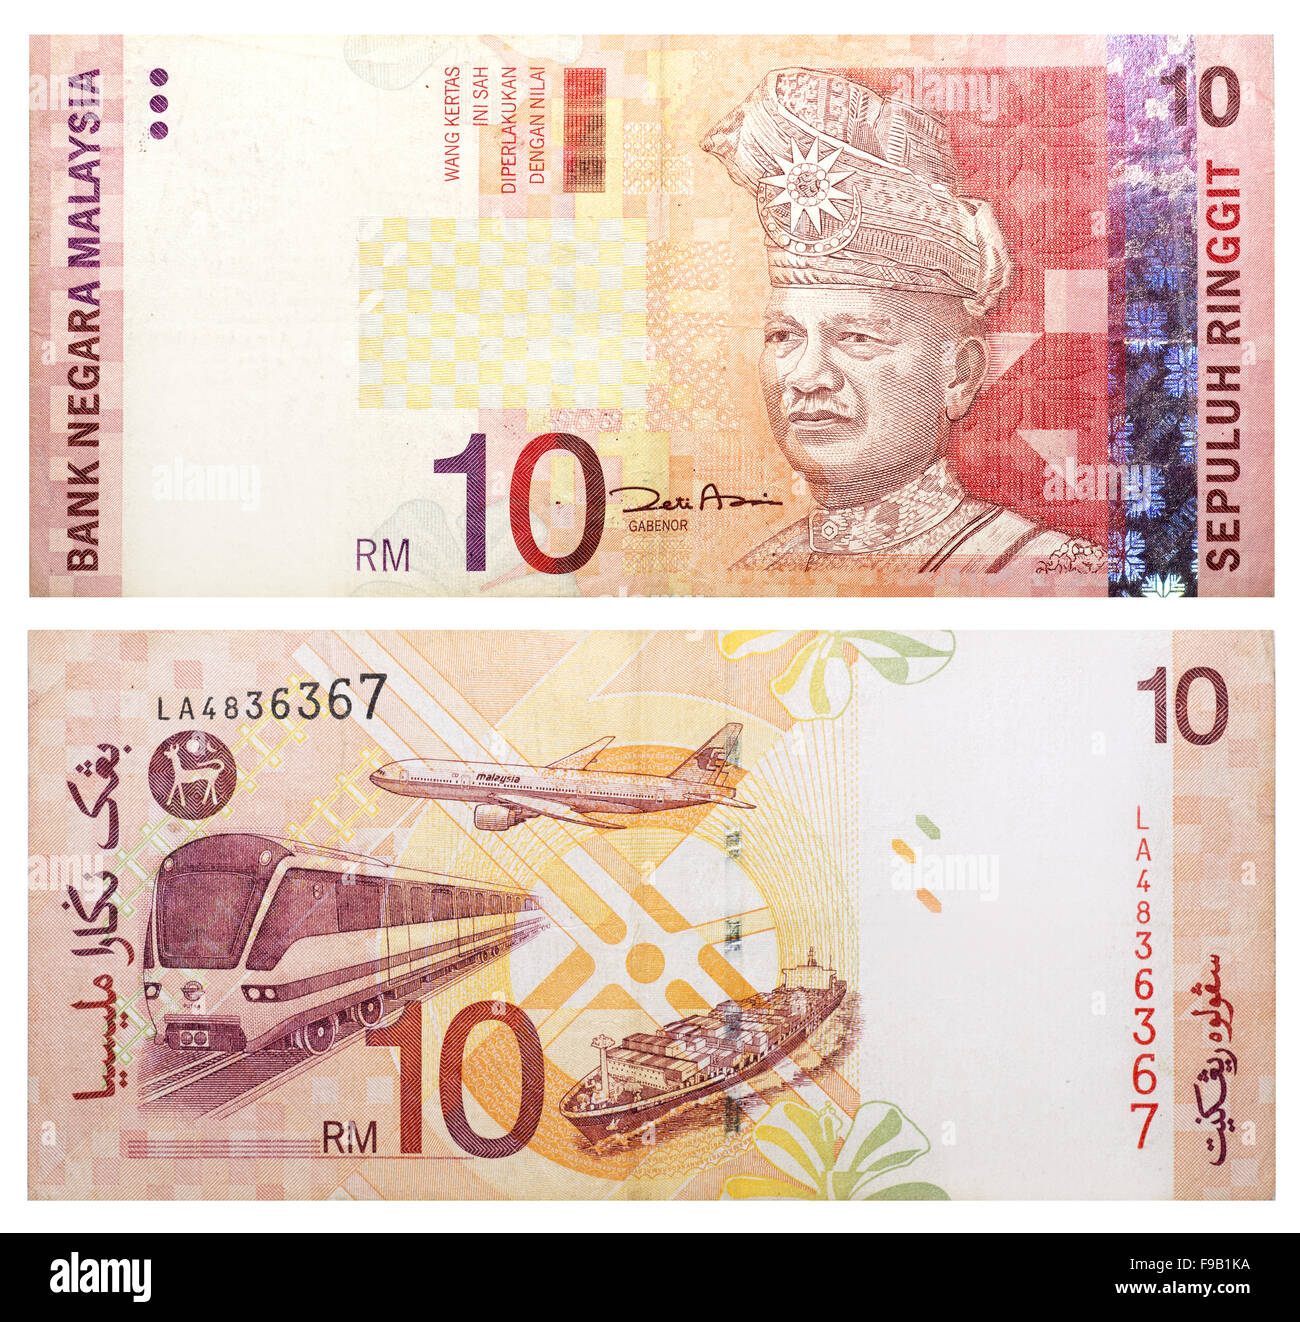 Malaysian currency stock photos malaysian currency stock images 10 malaysian ringgit stock image buycottarizona Image collections